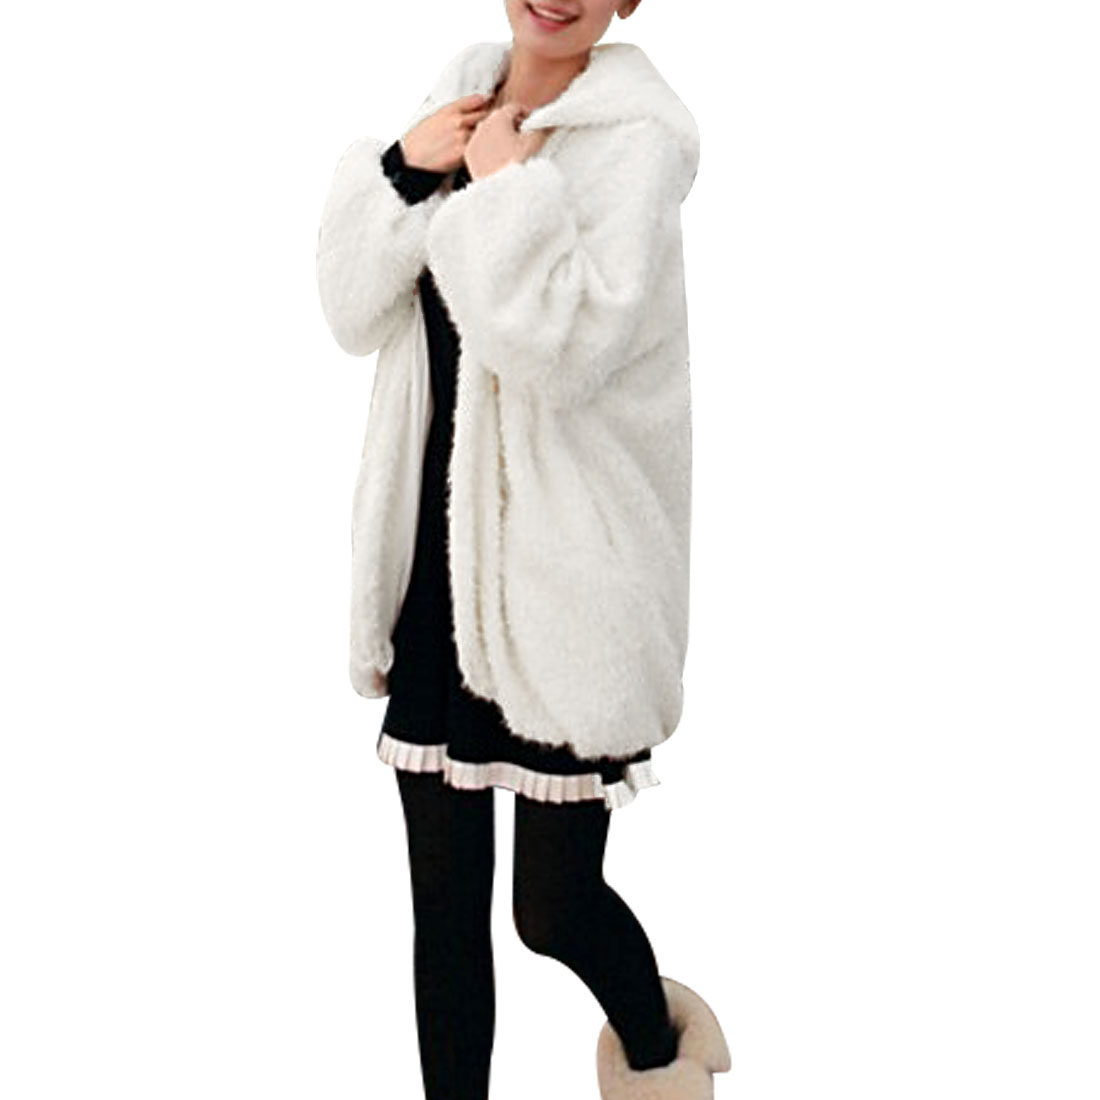 Lady Long Sleeve Hooded White Winter Plush Coat XS